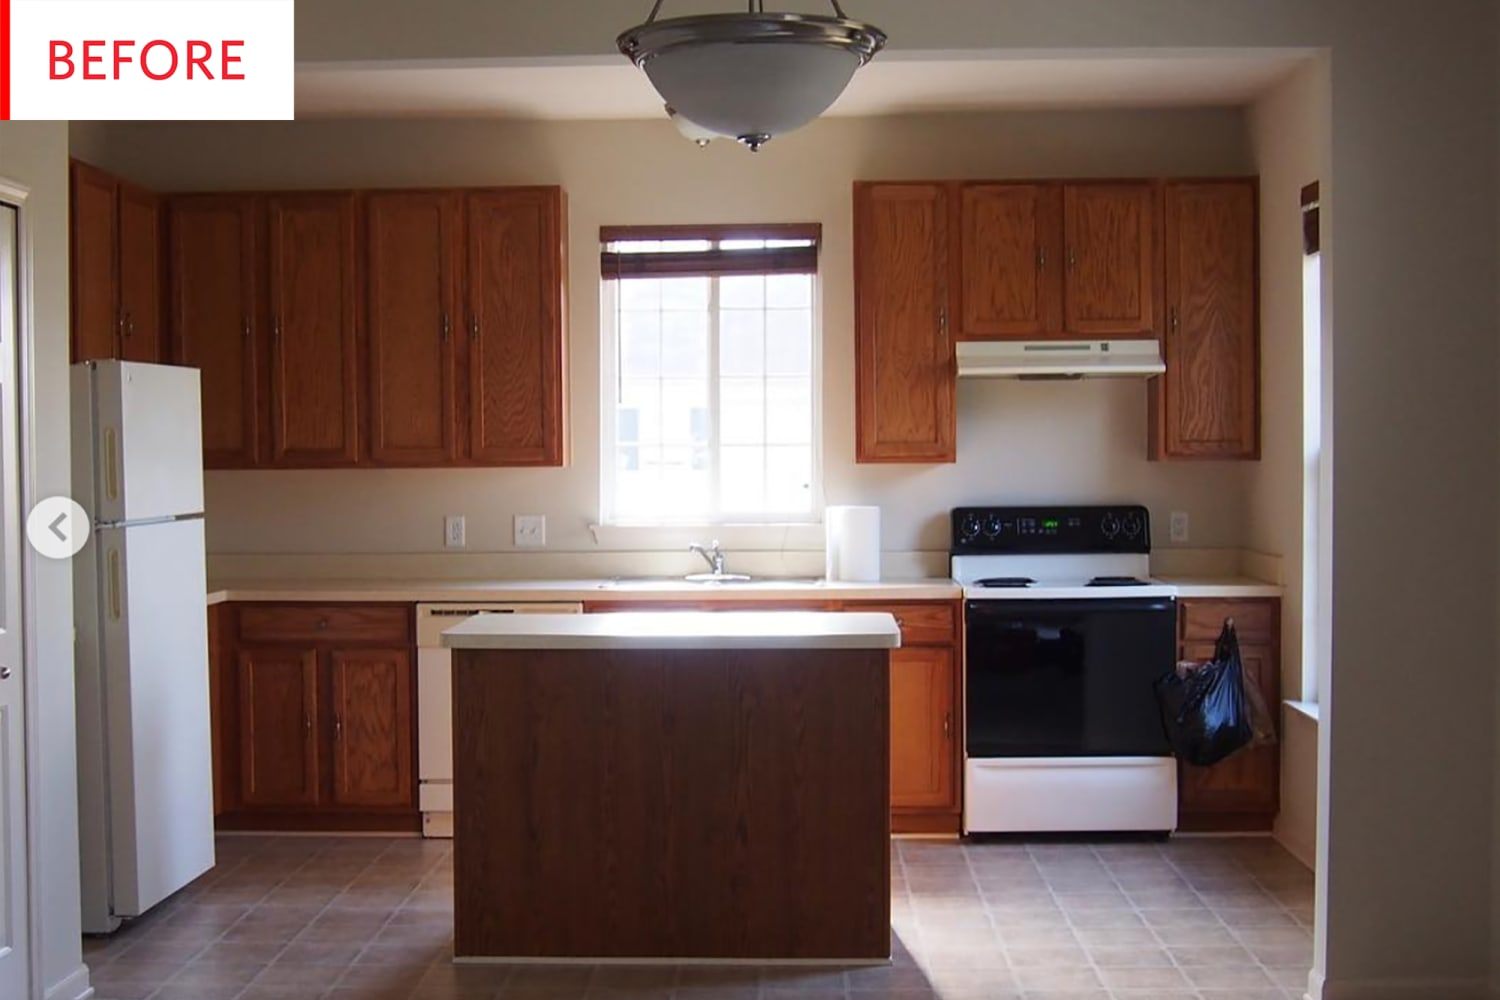 Before and After: This Kitchen Flips the Script on Beige and Boring